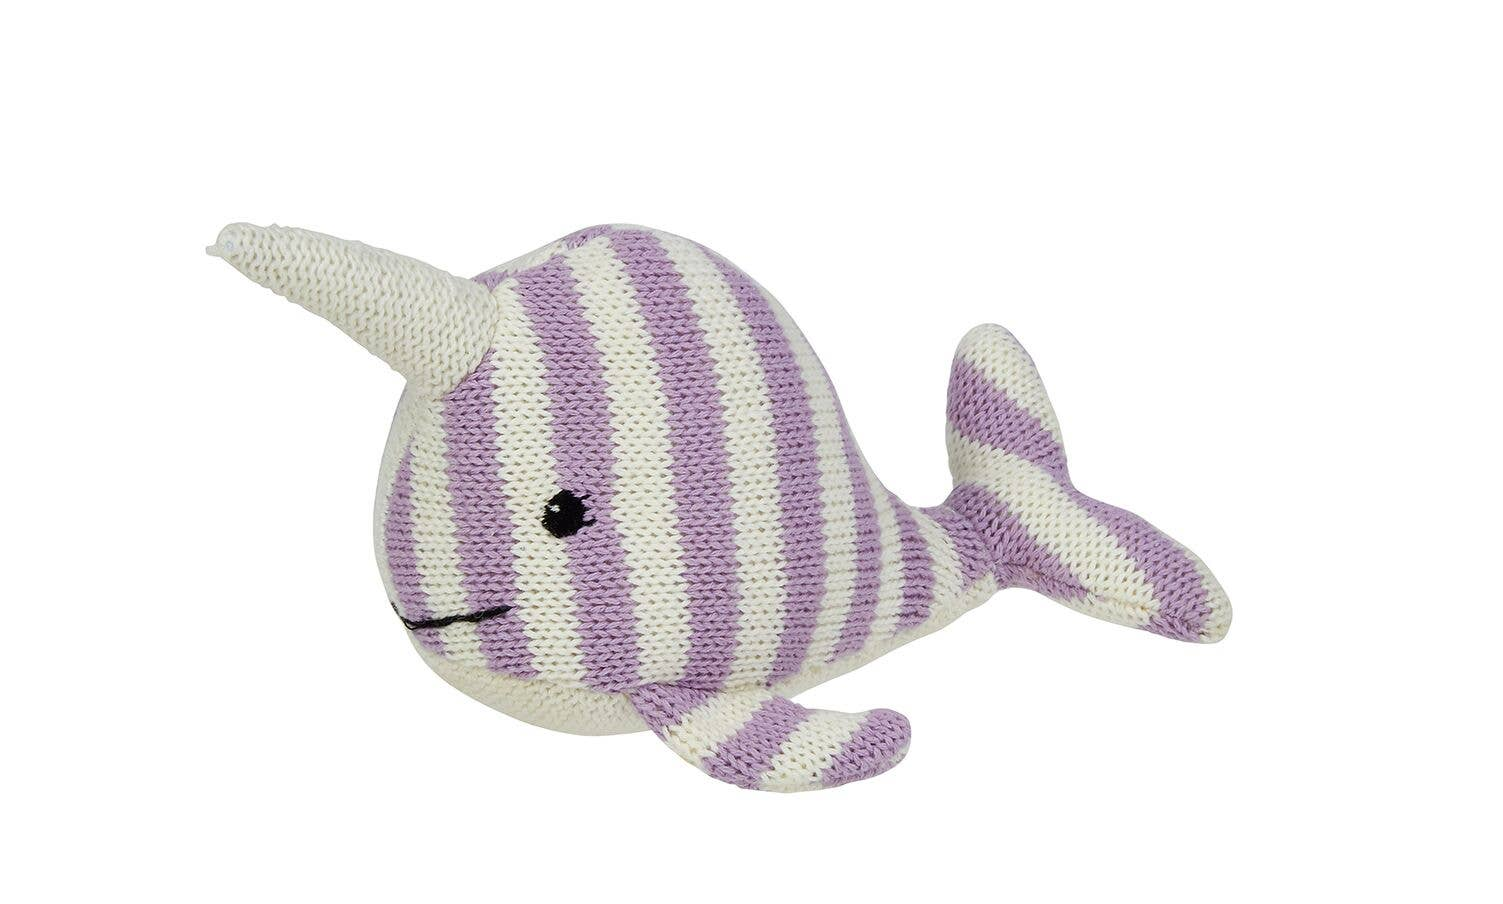 Maison Chic - Nina the Narwhal Striped Knit Rattle